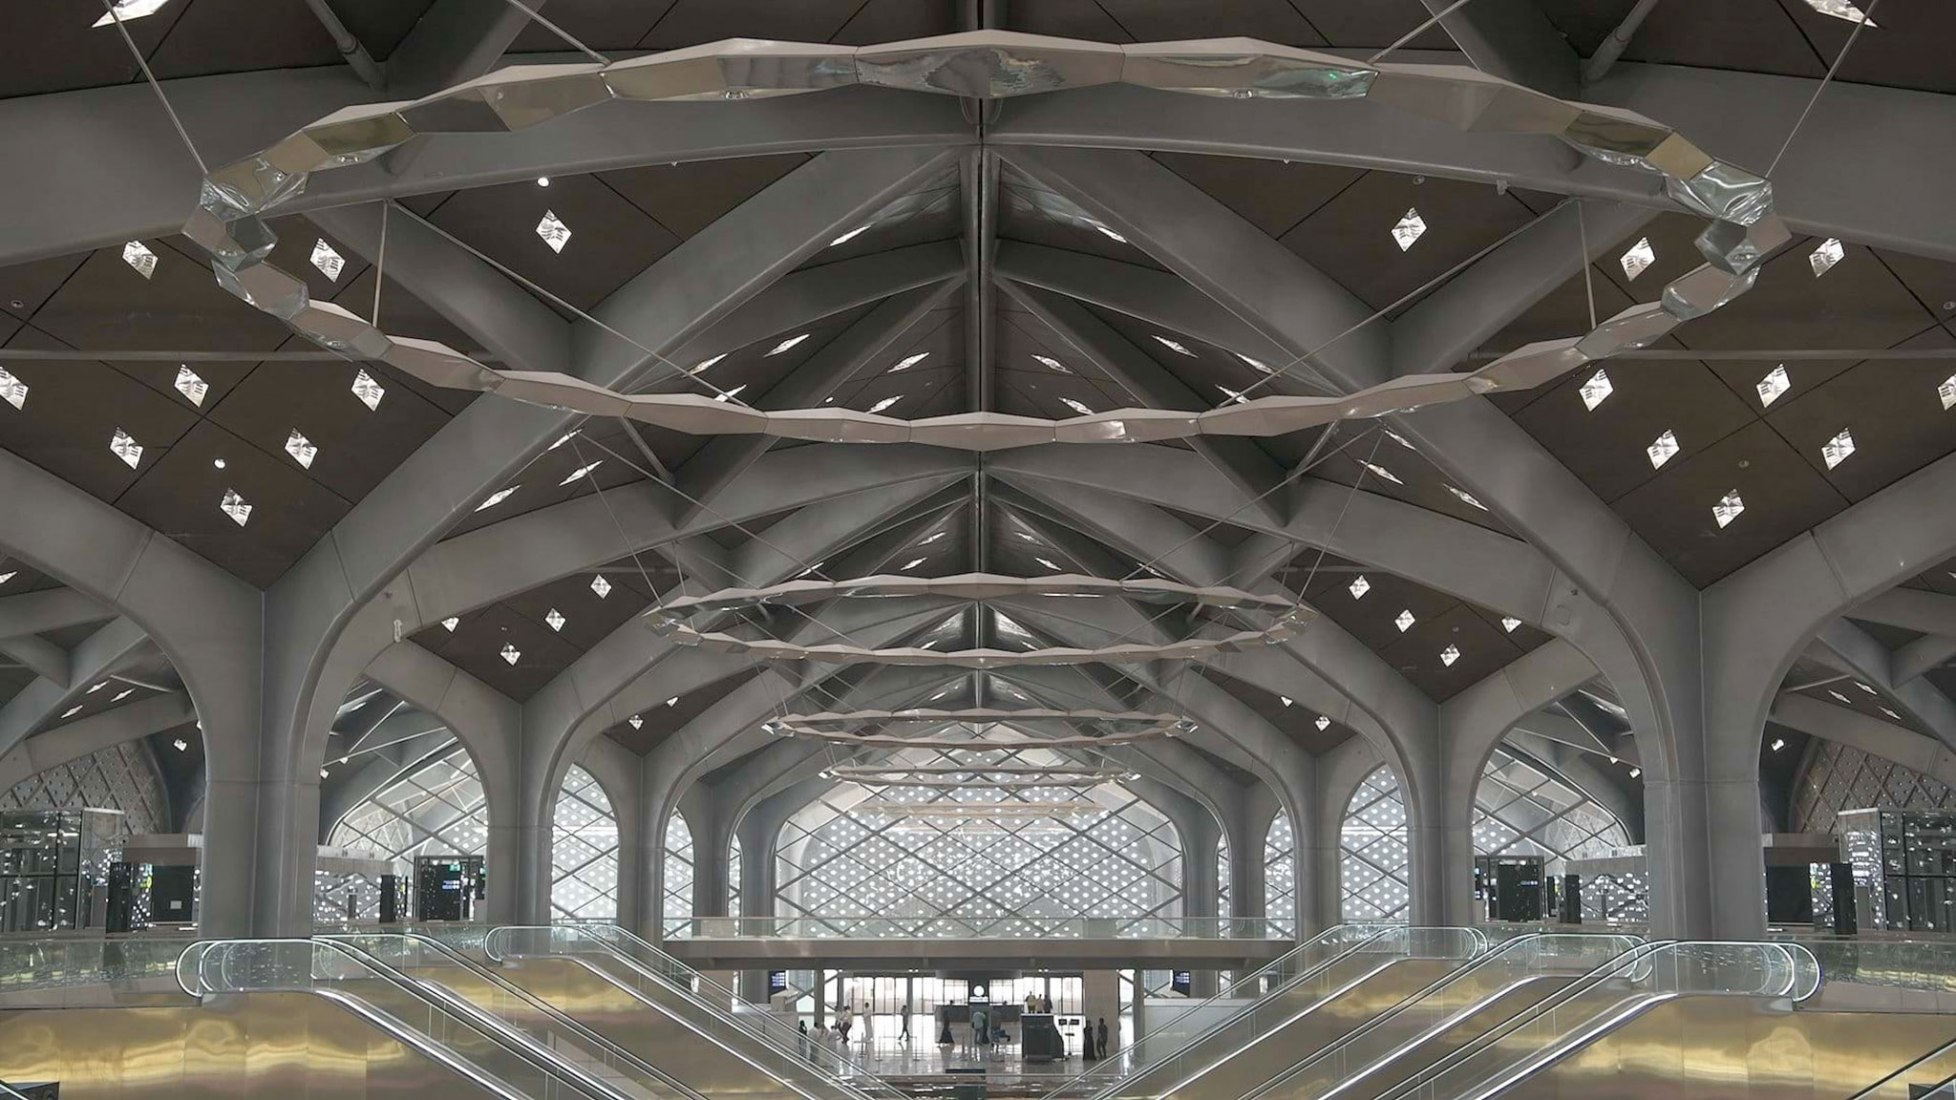 Haramain High Speed Rail by Foster + Partners. Photograph by Nigel Young / Foster + Partners